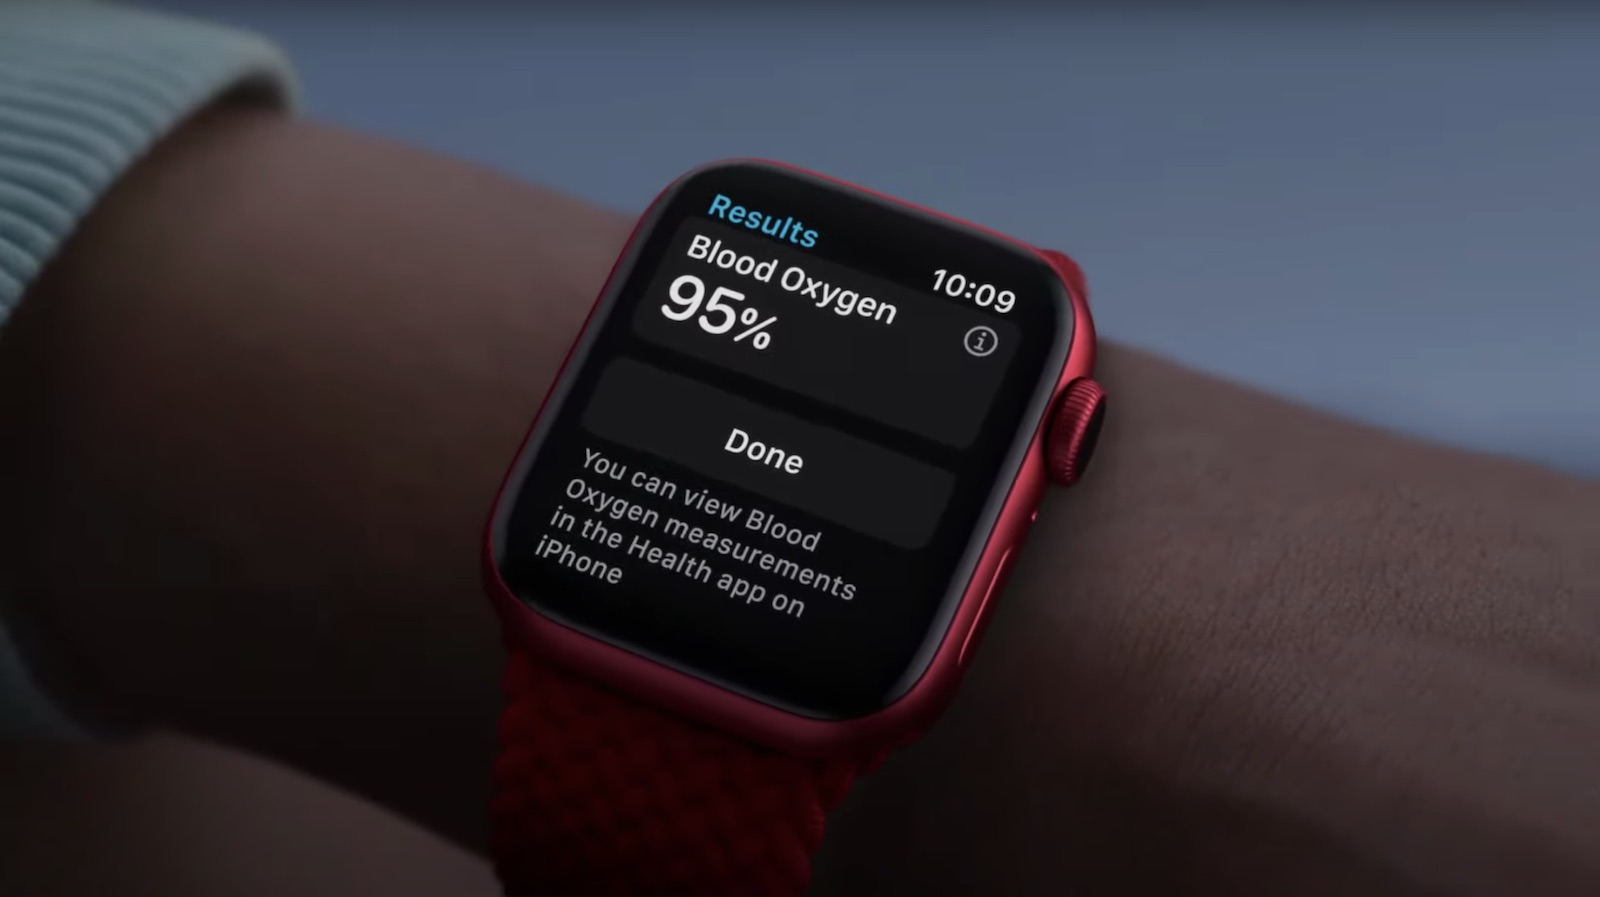 Apple patent filed by US Patent and Trademark Office hints at a wrist band revolution